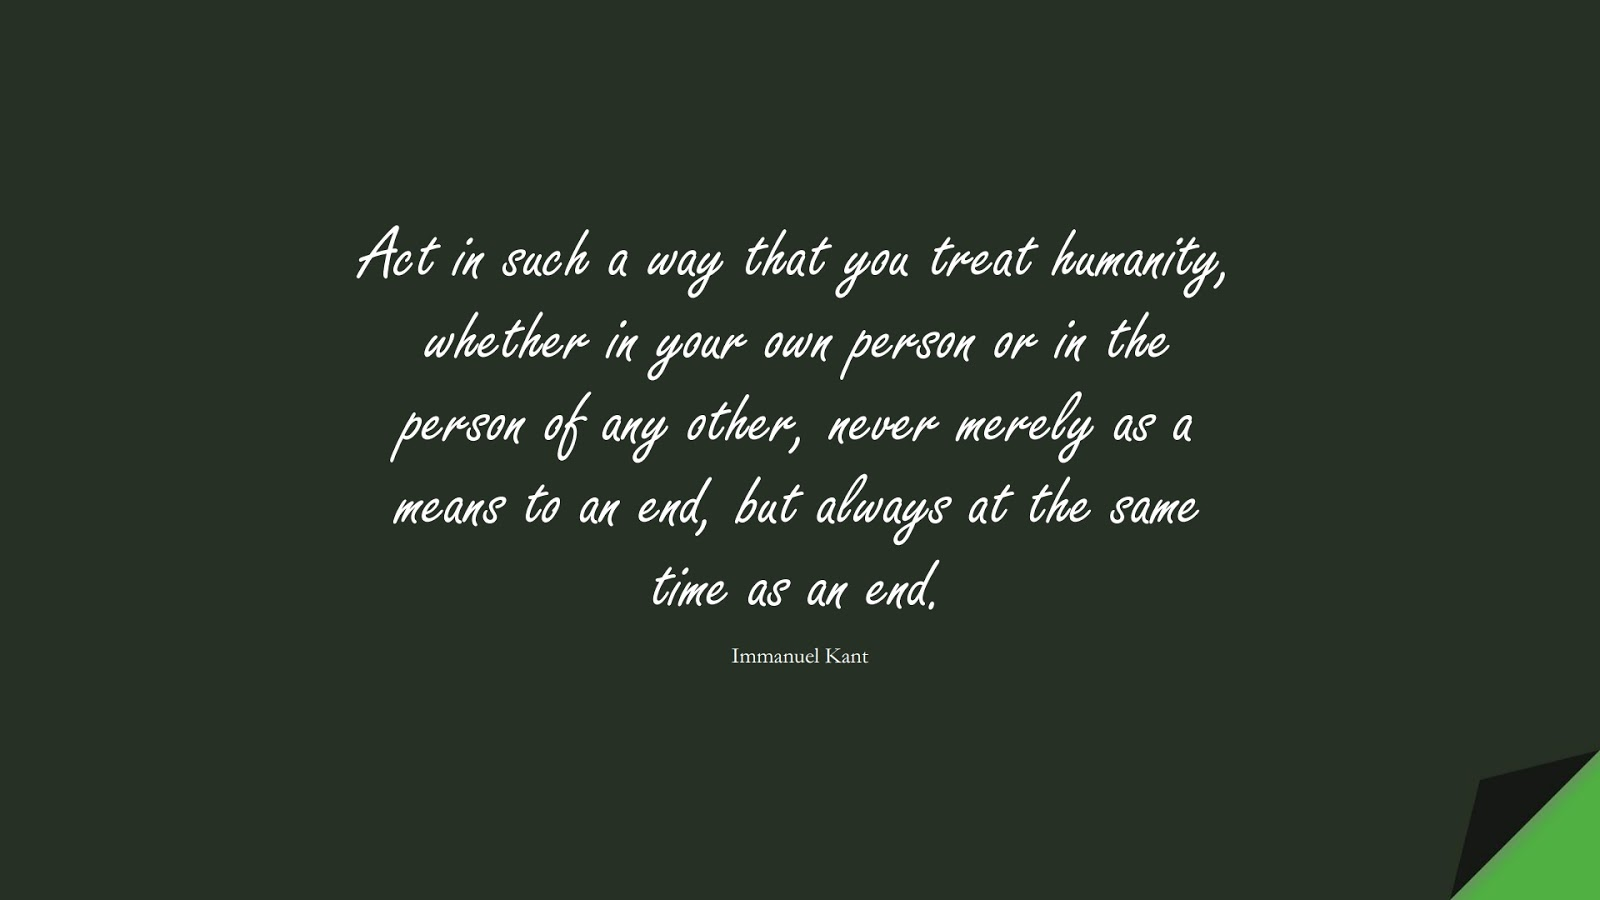 Act in such a way that you treat humanity, whether in your own person or in the person of any other, never merely as a means to an end, but always at the same time as an end. (Immanuel Kant);  #HumanityQuotes